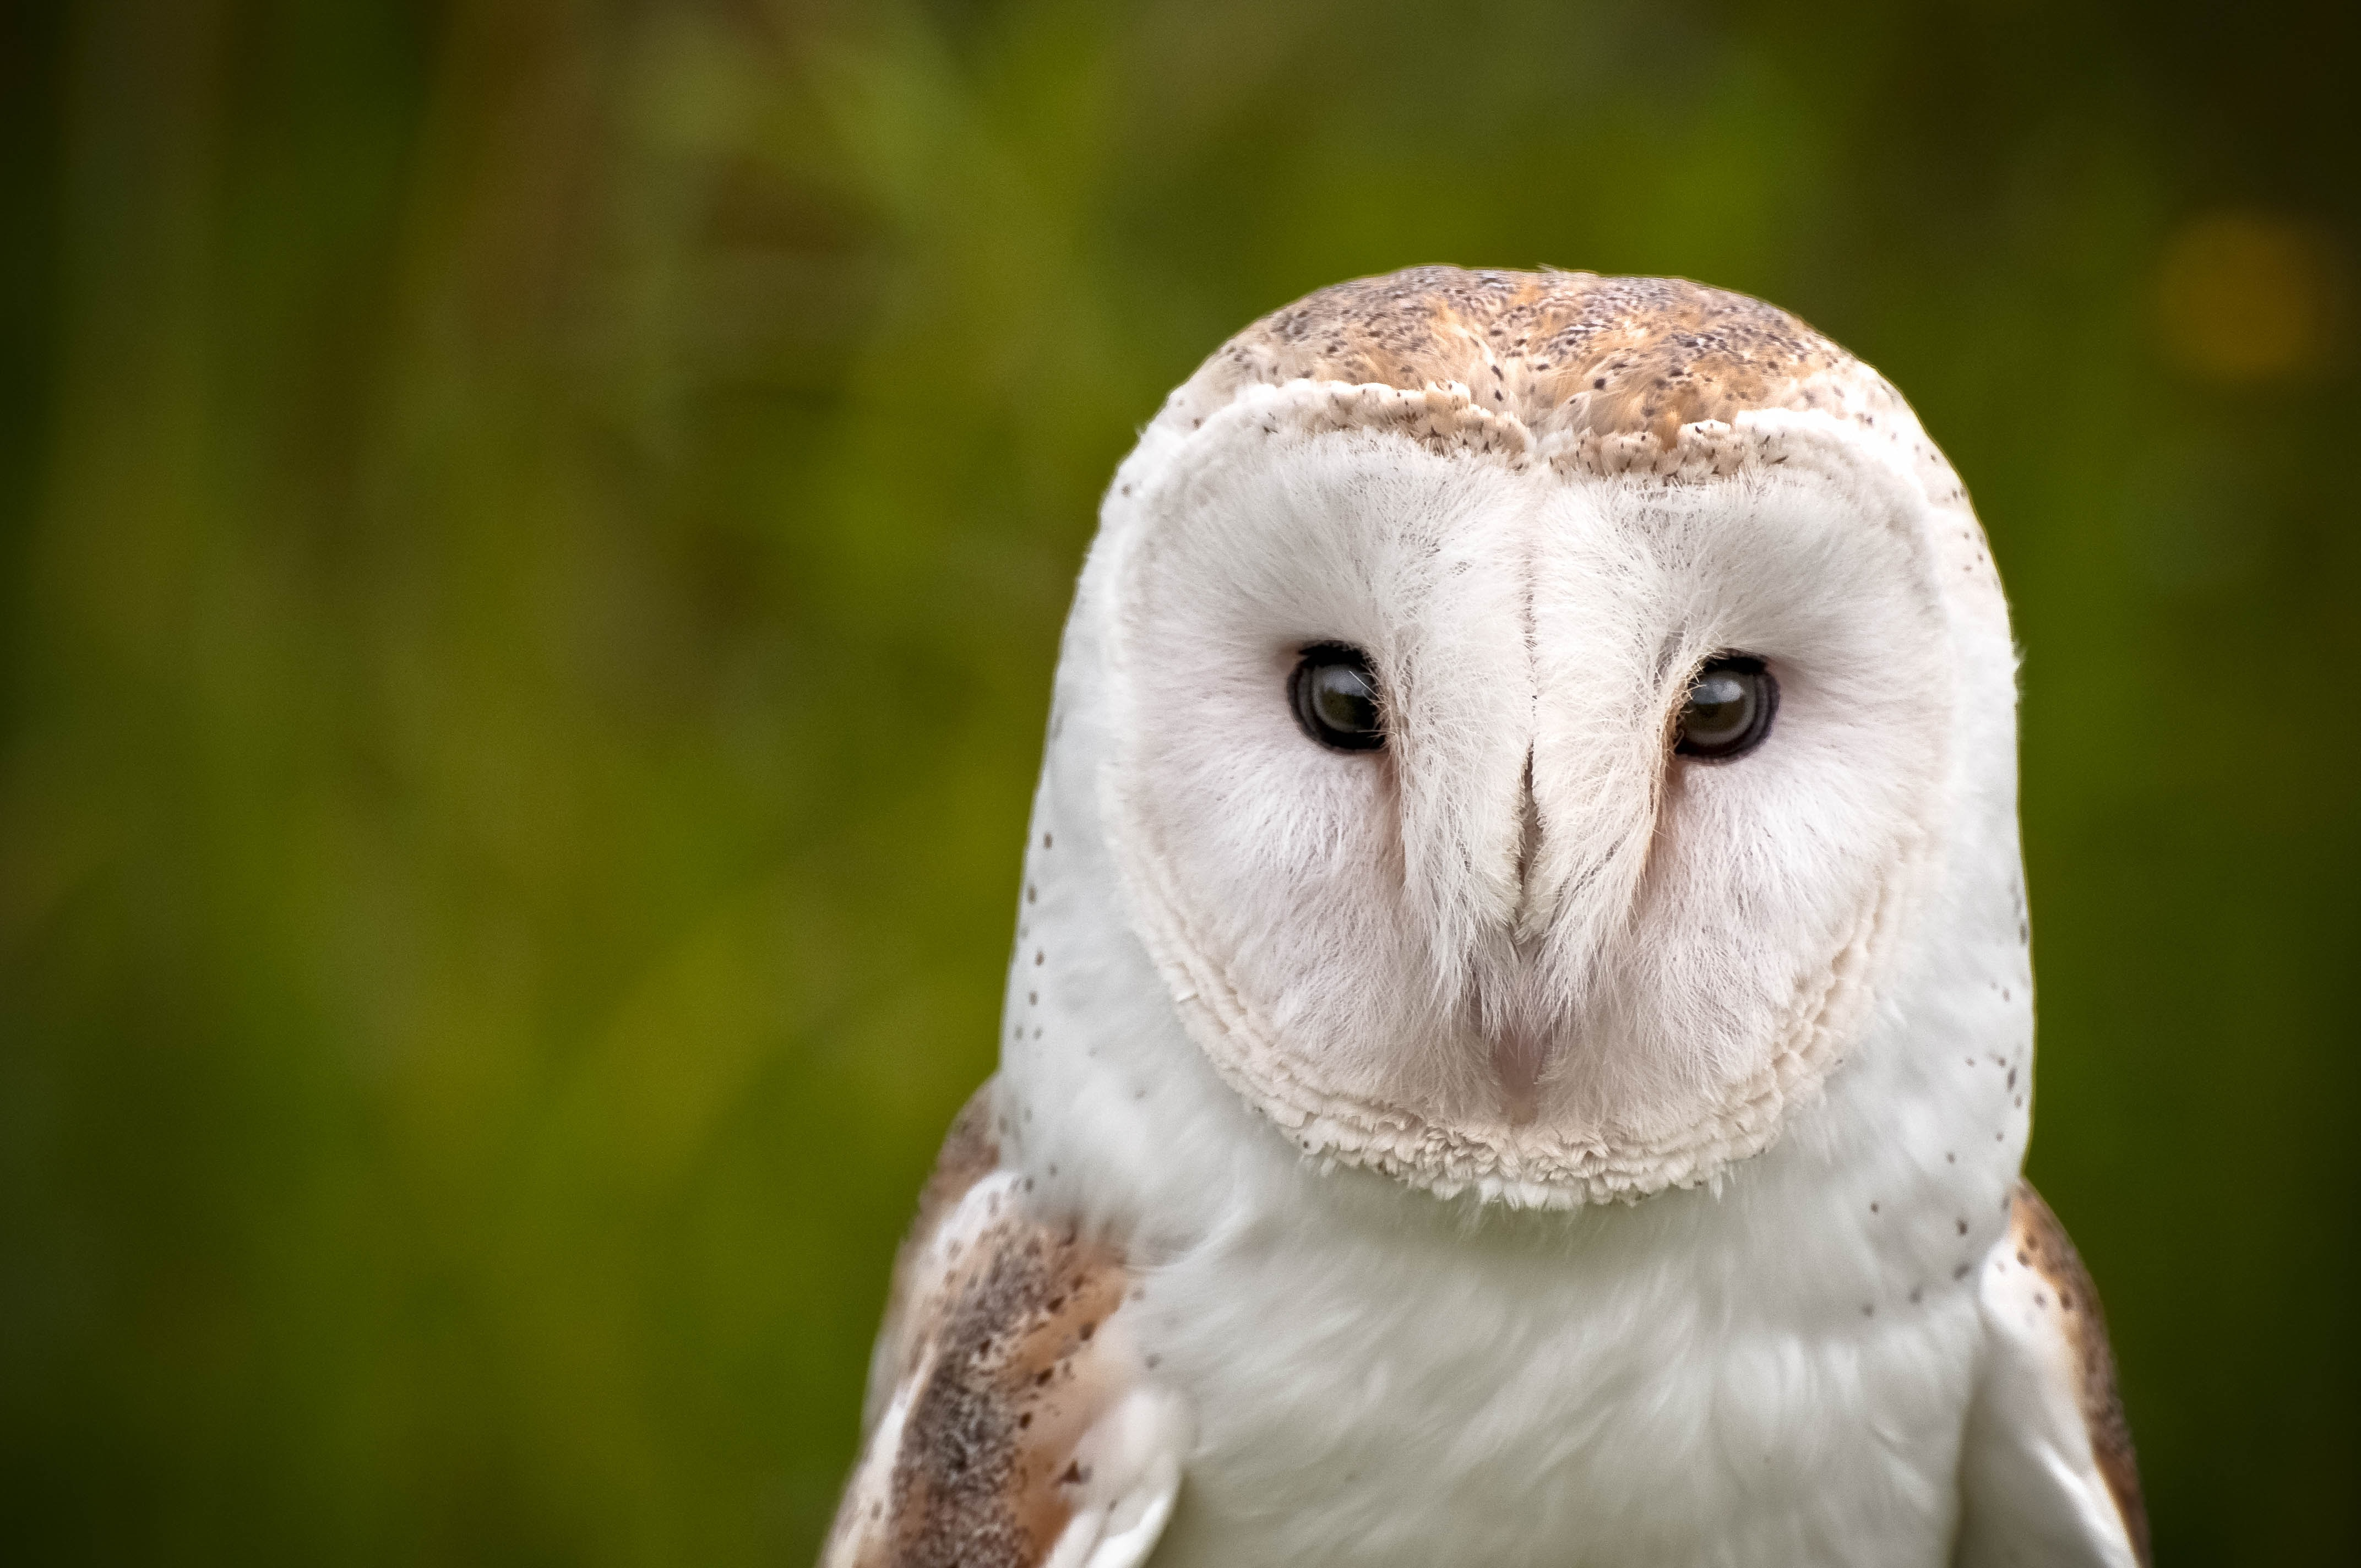 Barn owls can be found at Dunchideock barton along with many other forms of wildlife